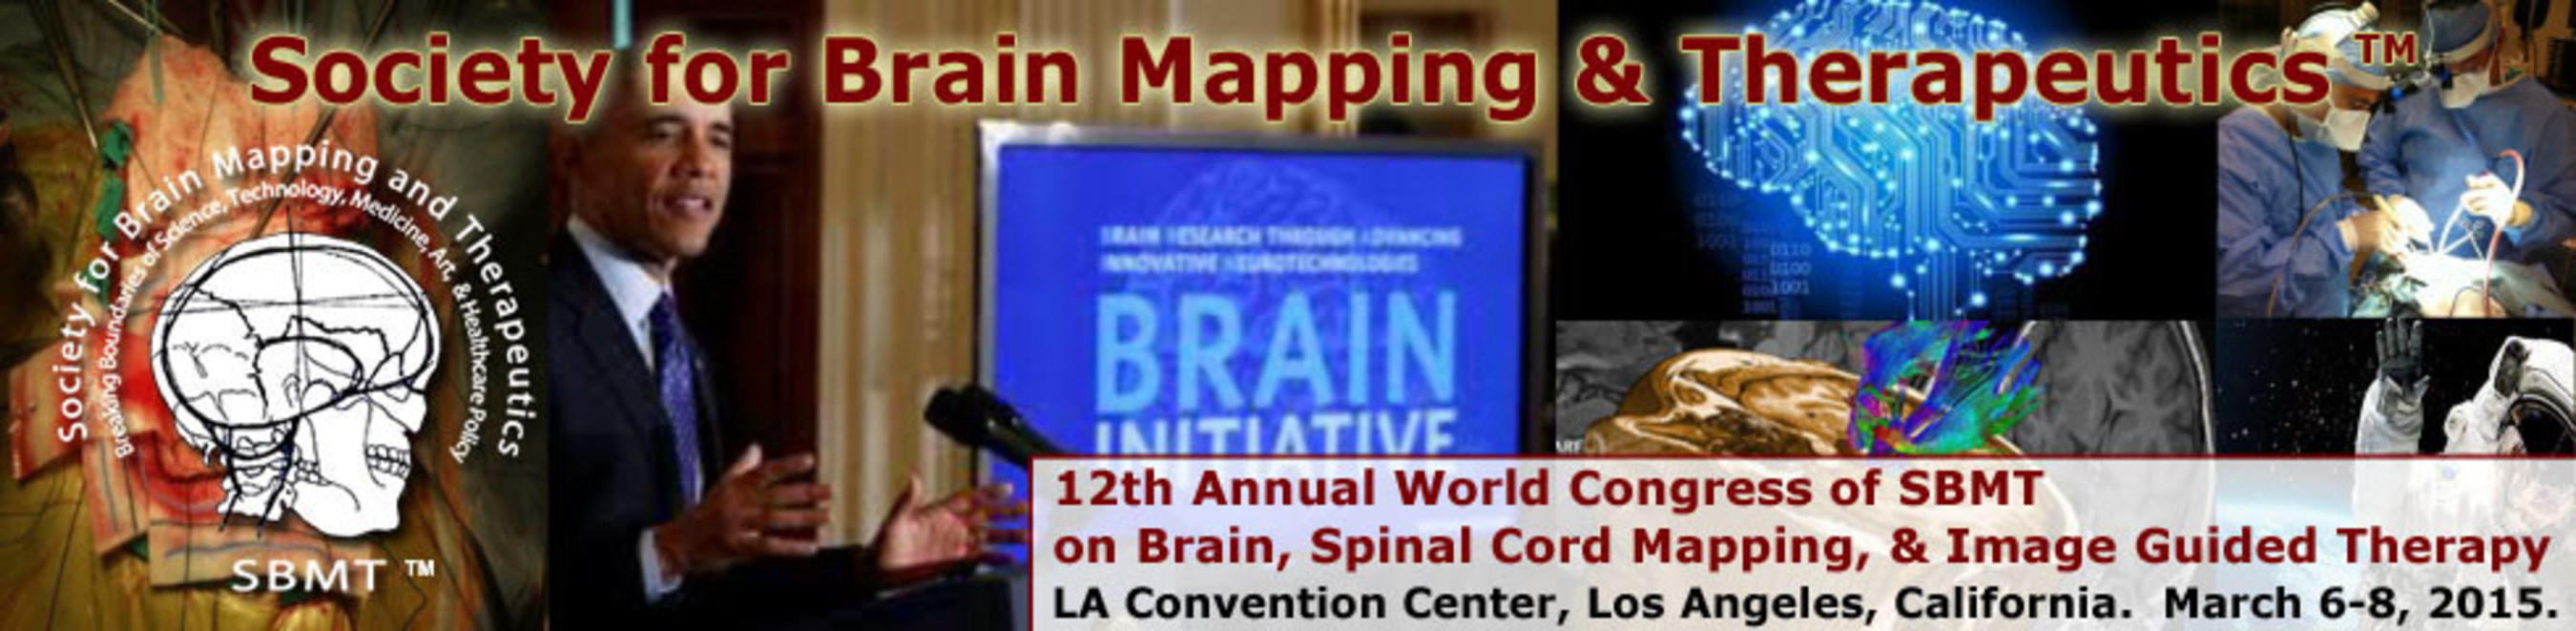 Society for Brain Mapping and Therapeutics holds its 12th Annual World Congress at the LA Convention Center in ...